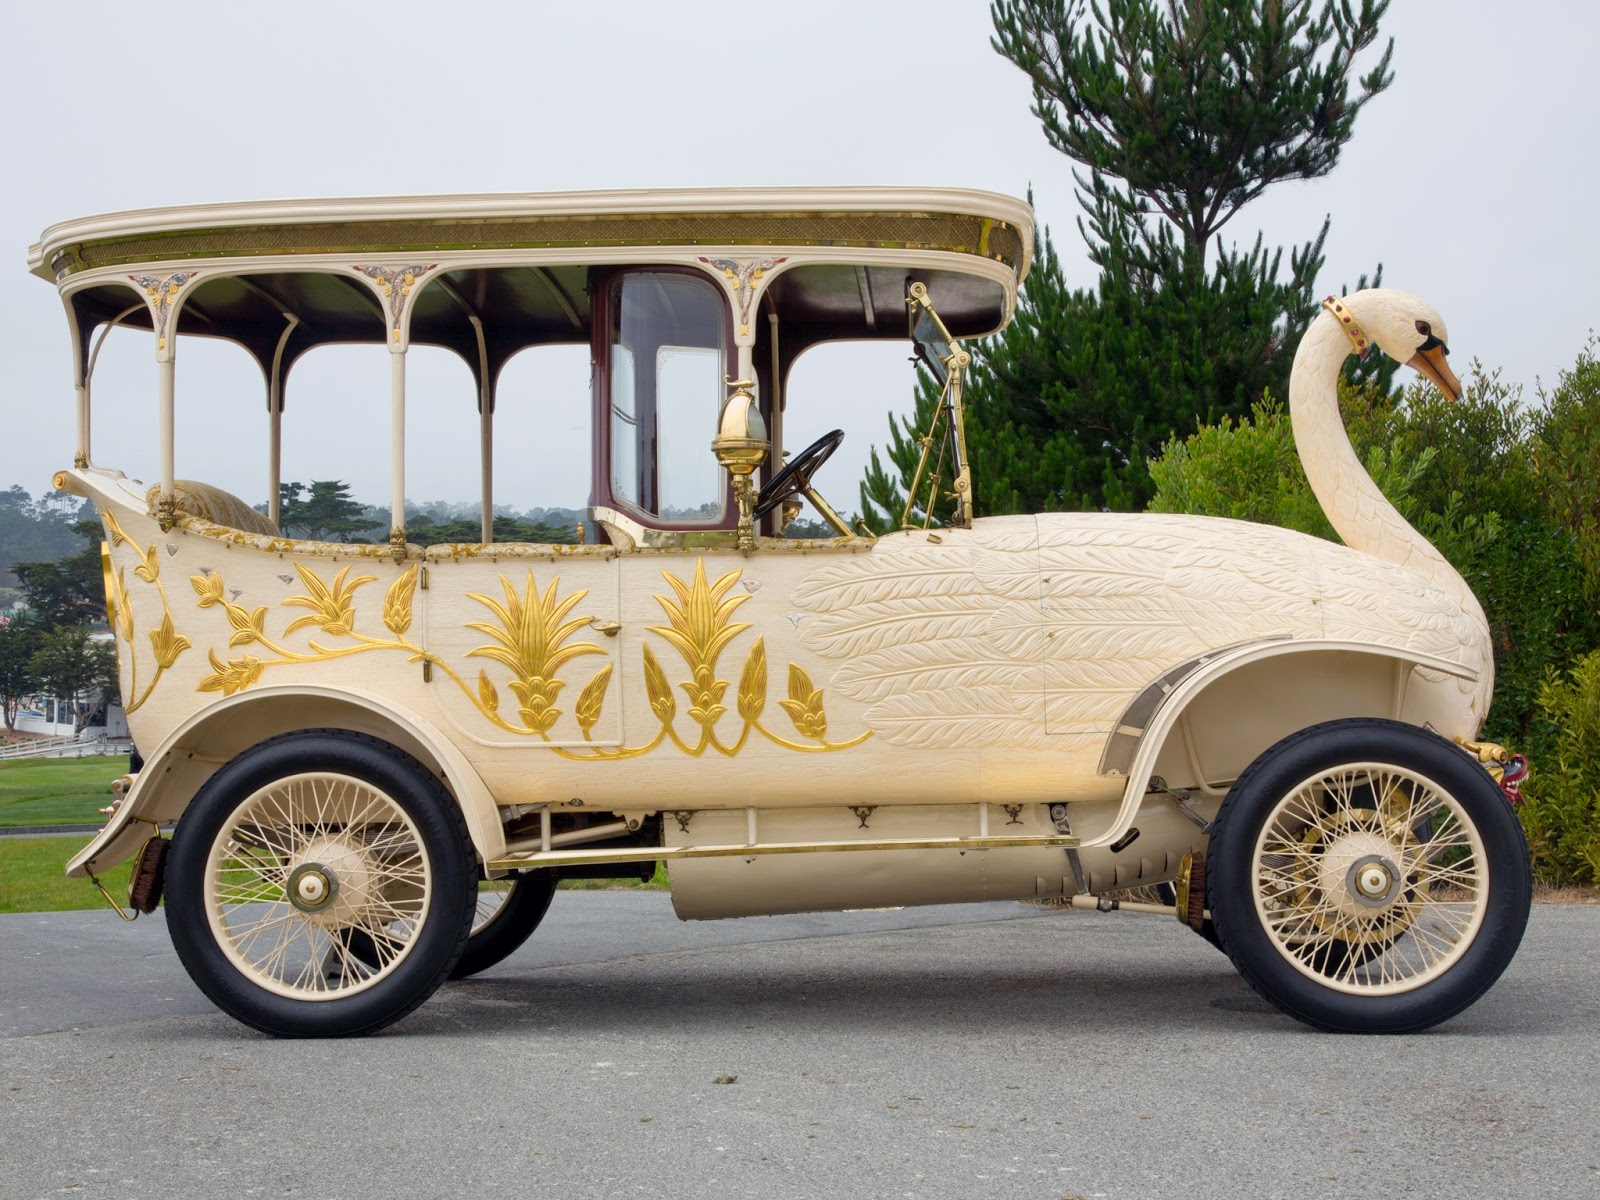 the notable thing about this car is that they cost three times as much as a rolls royce back in 1910 the high price came with its own set of luxury